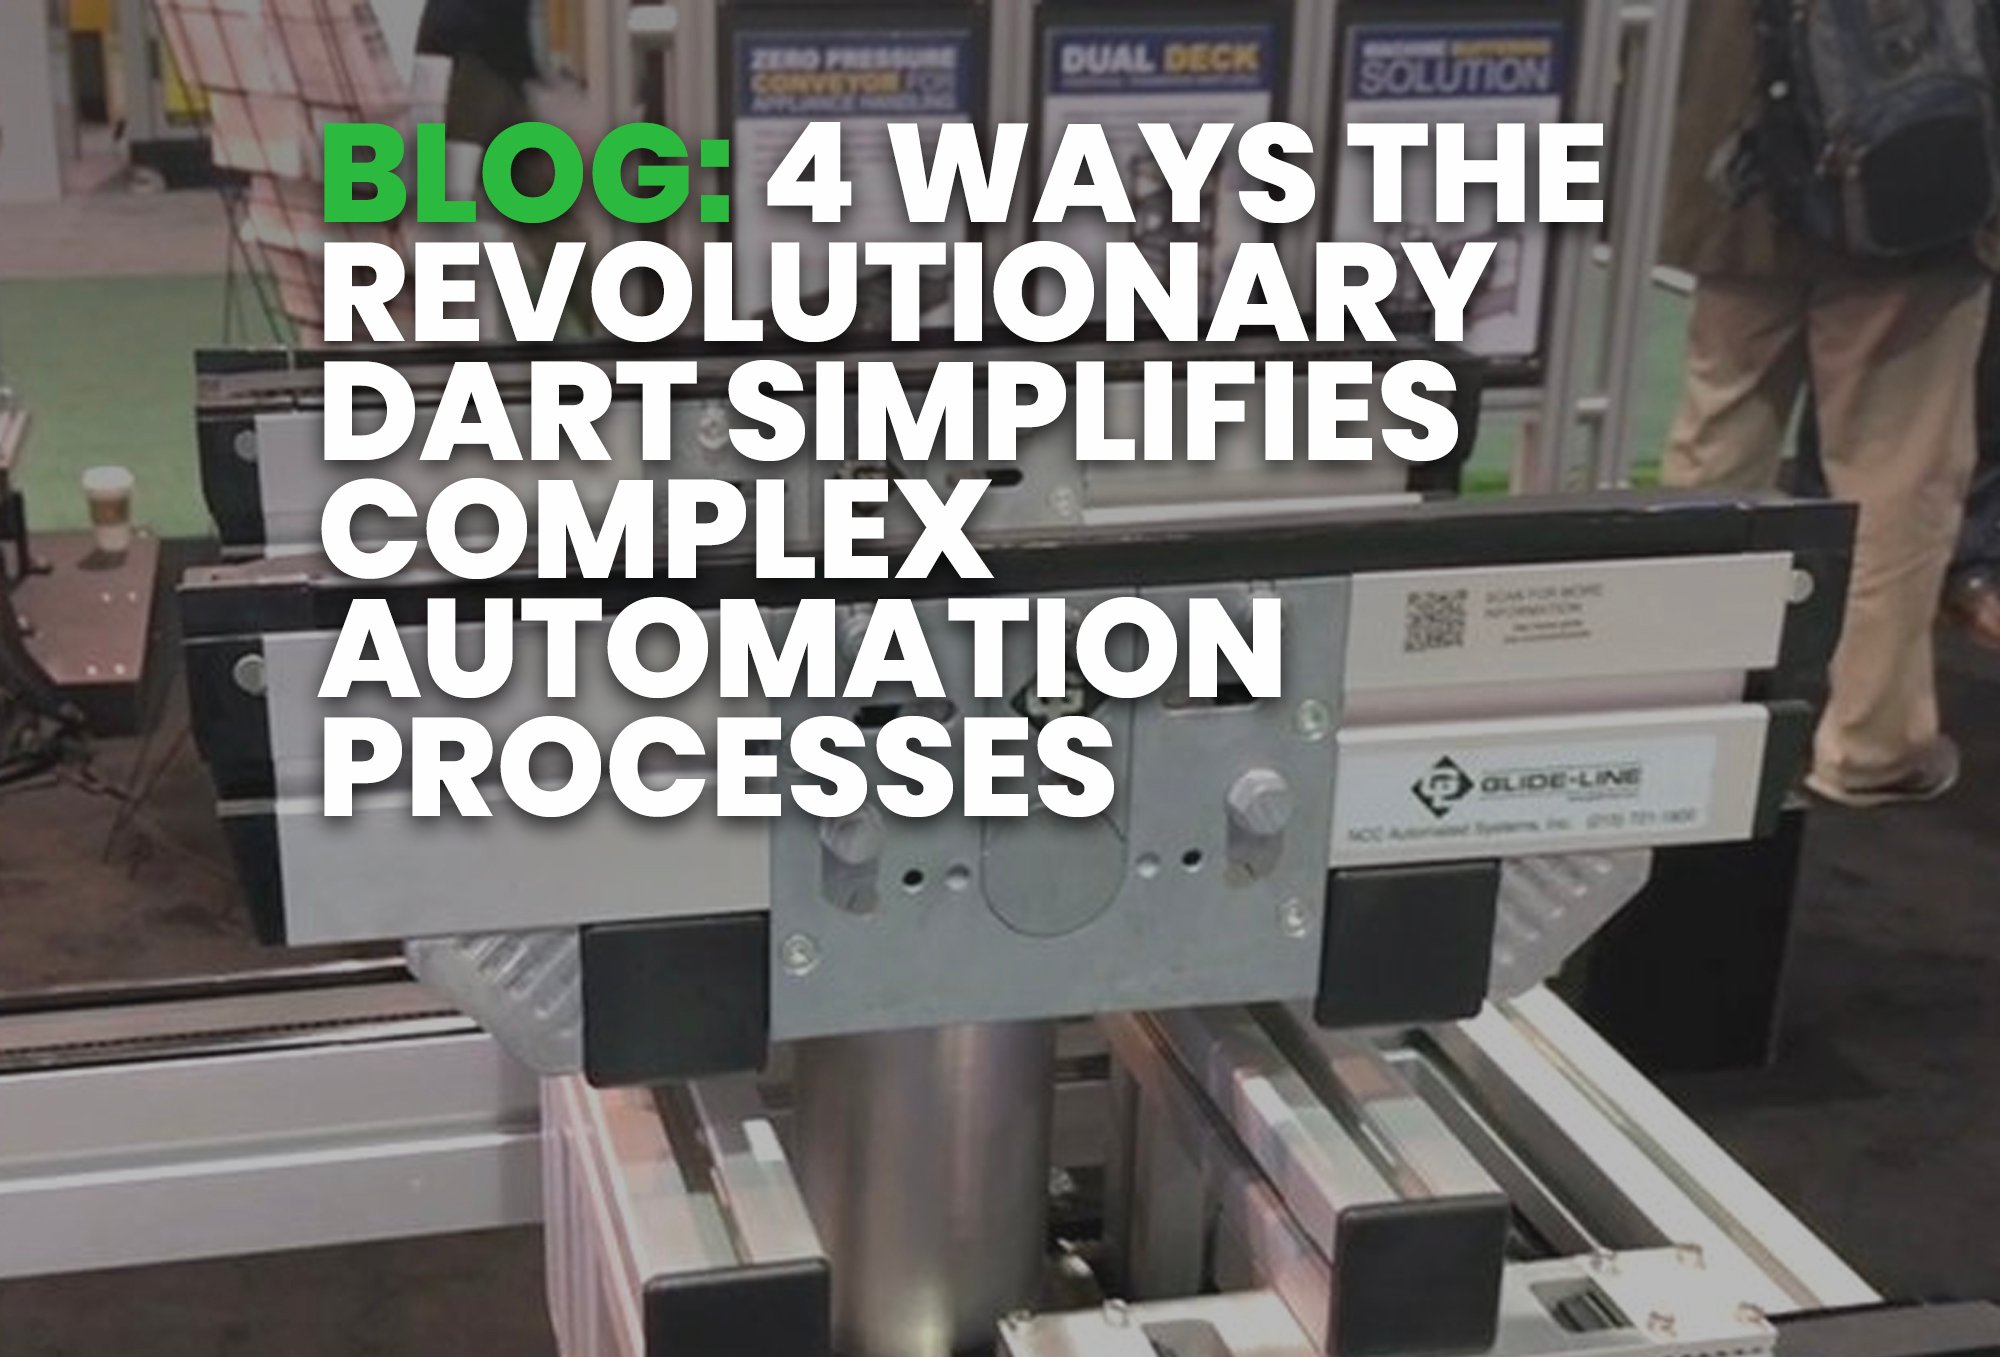 BLOG- 4 Ways the Revolutionary DART Simplifies Complex Automation Processes